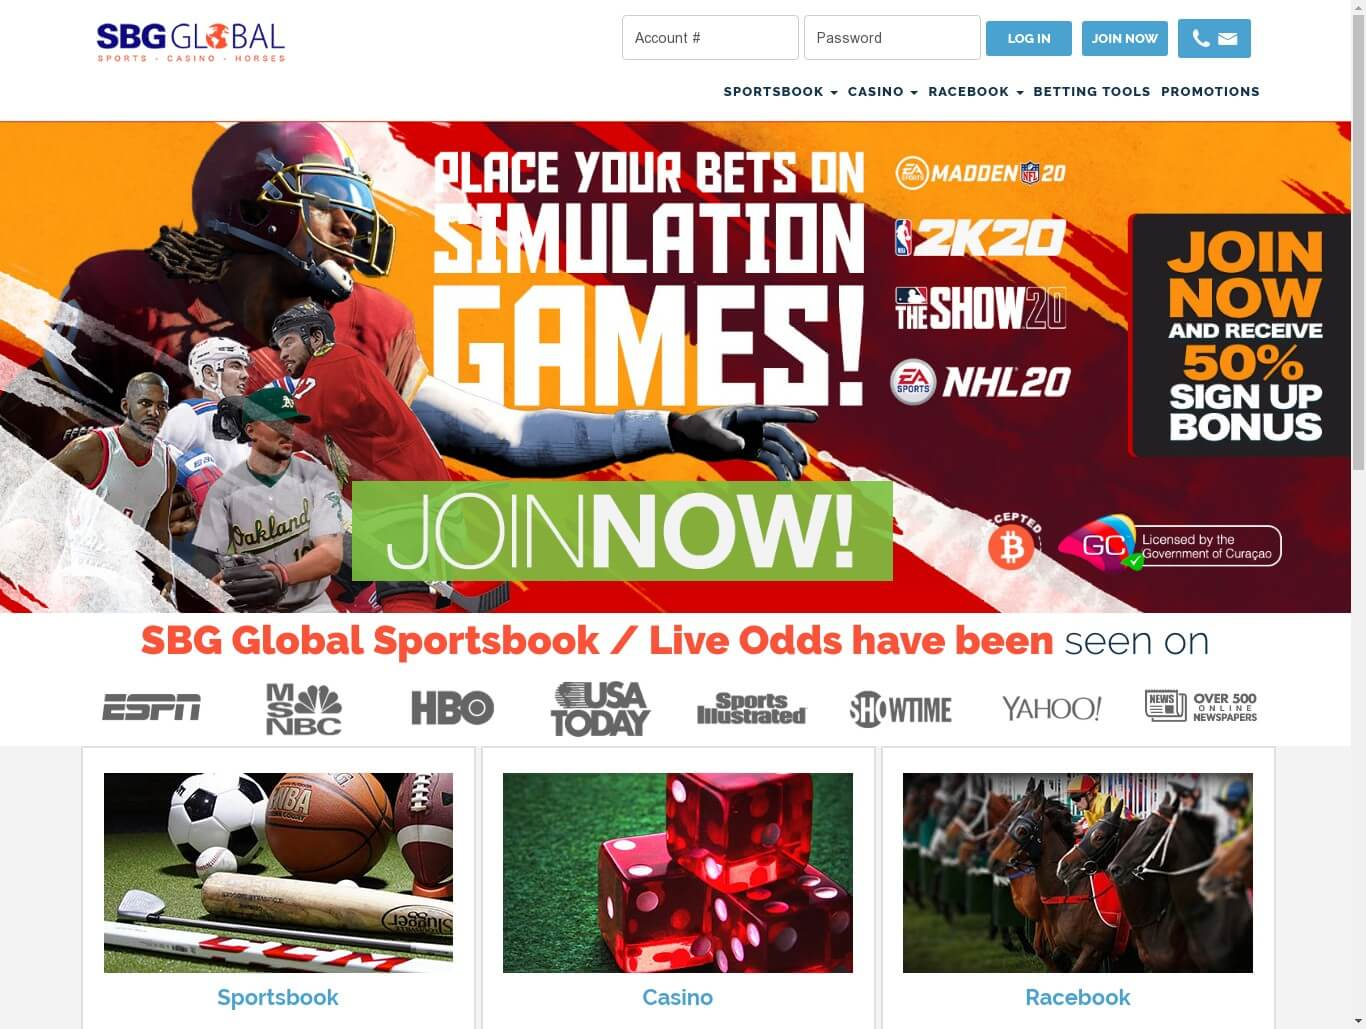 Bet on Sports, Sports Gambling _ Sportsbook _ Horse Betting at SBG Global